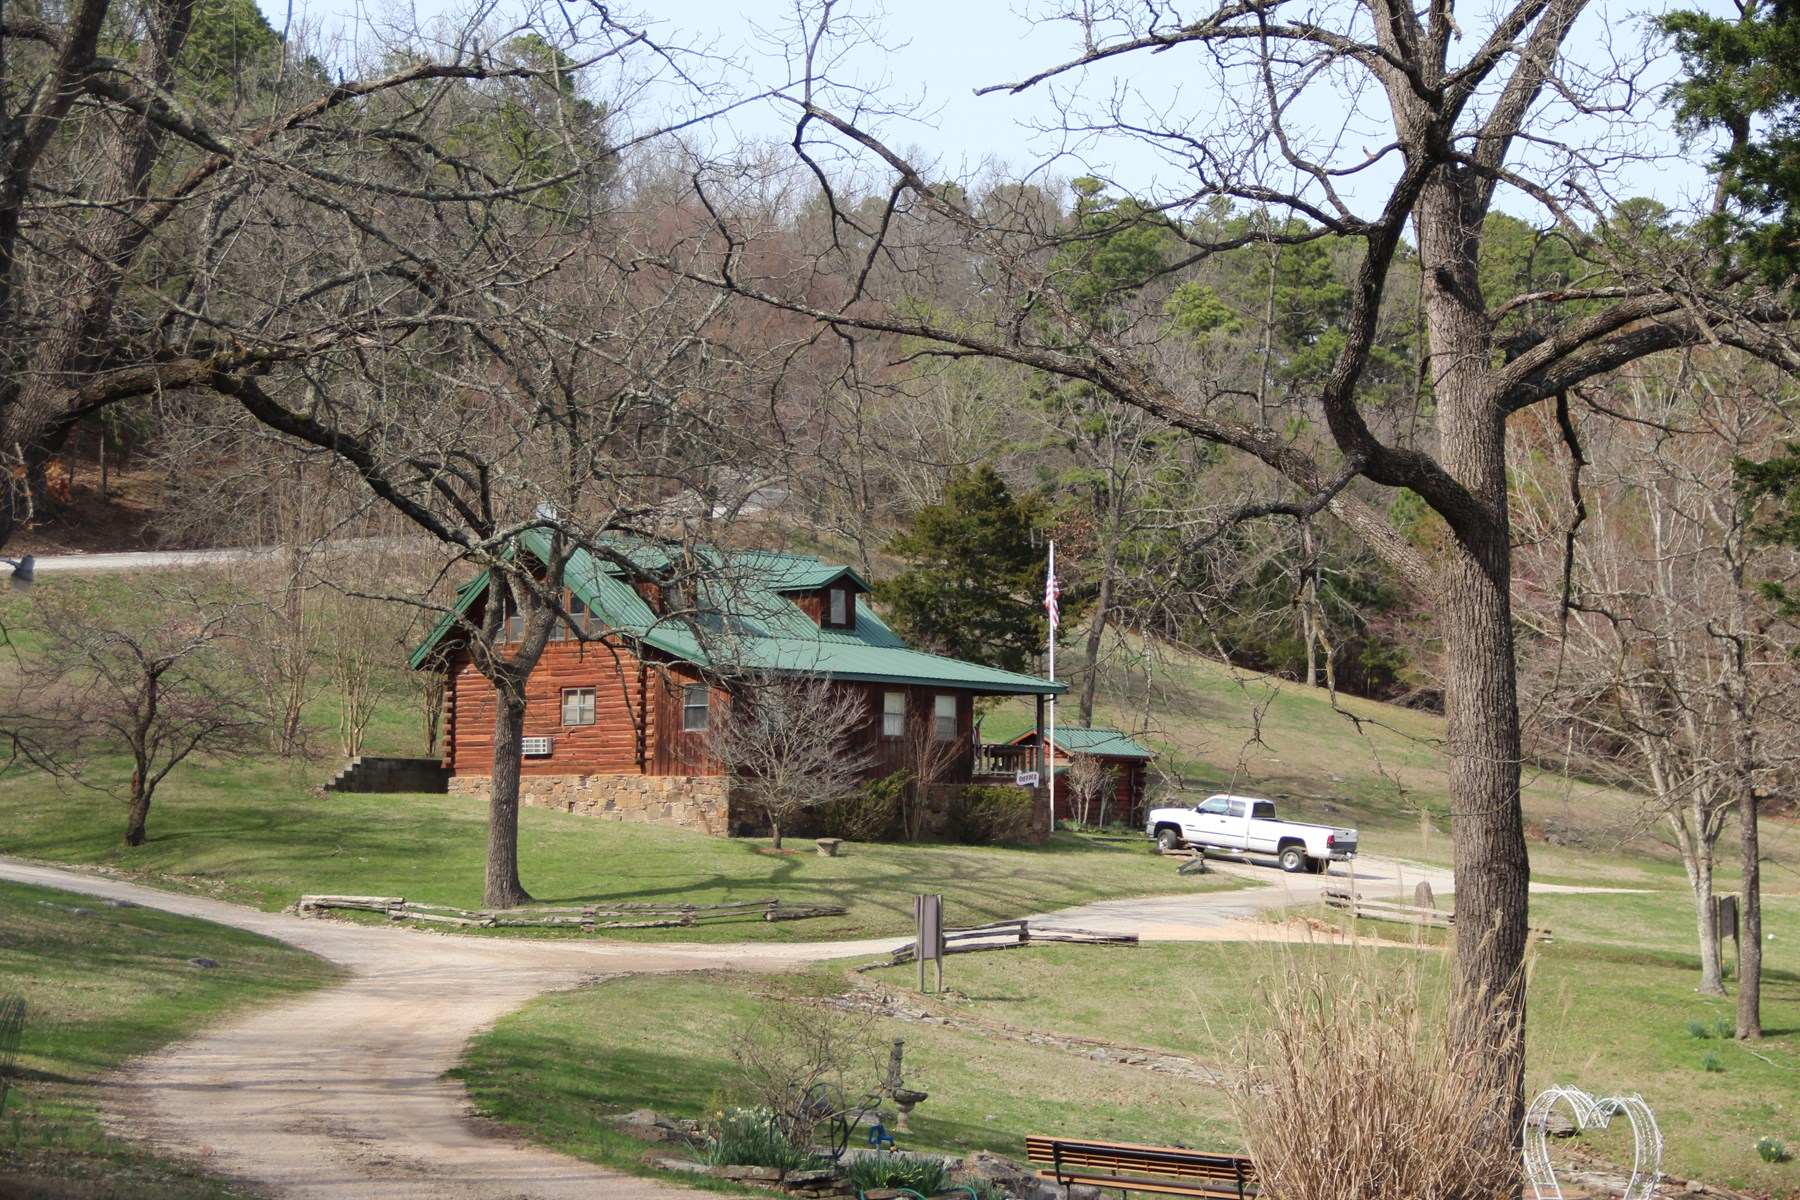 LOG CABIN IN THE OZARK HILLS NEAR EUREKA SPRINGS, AR